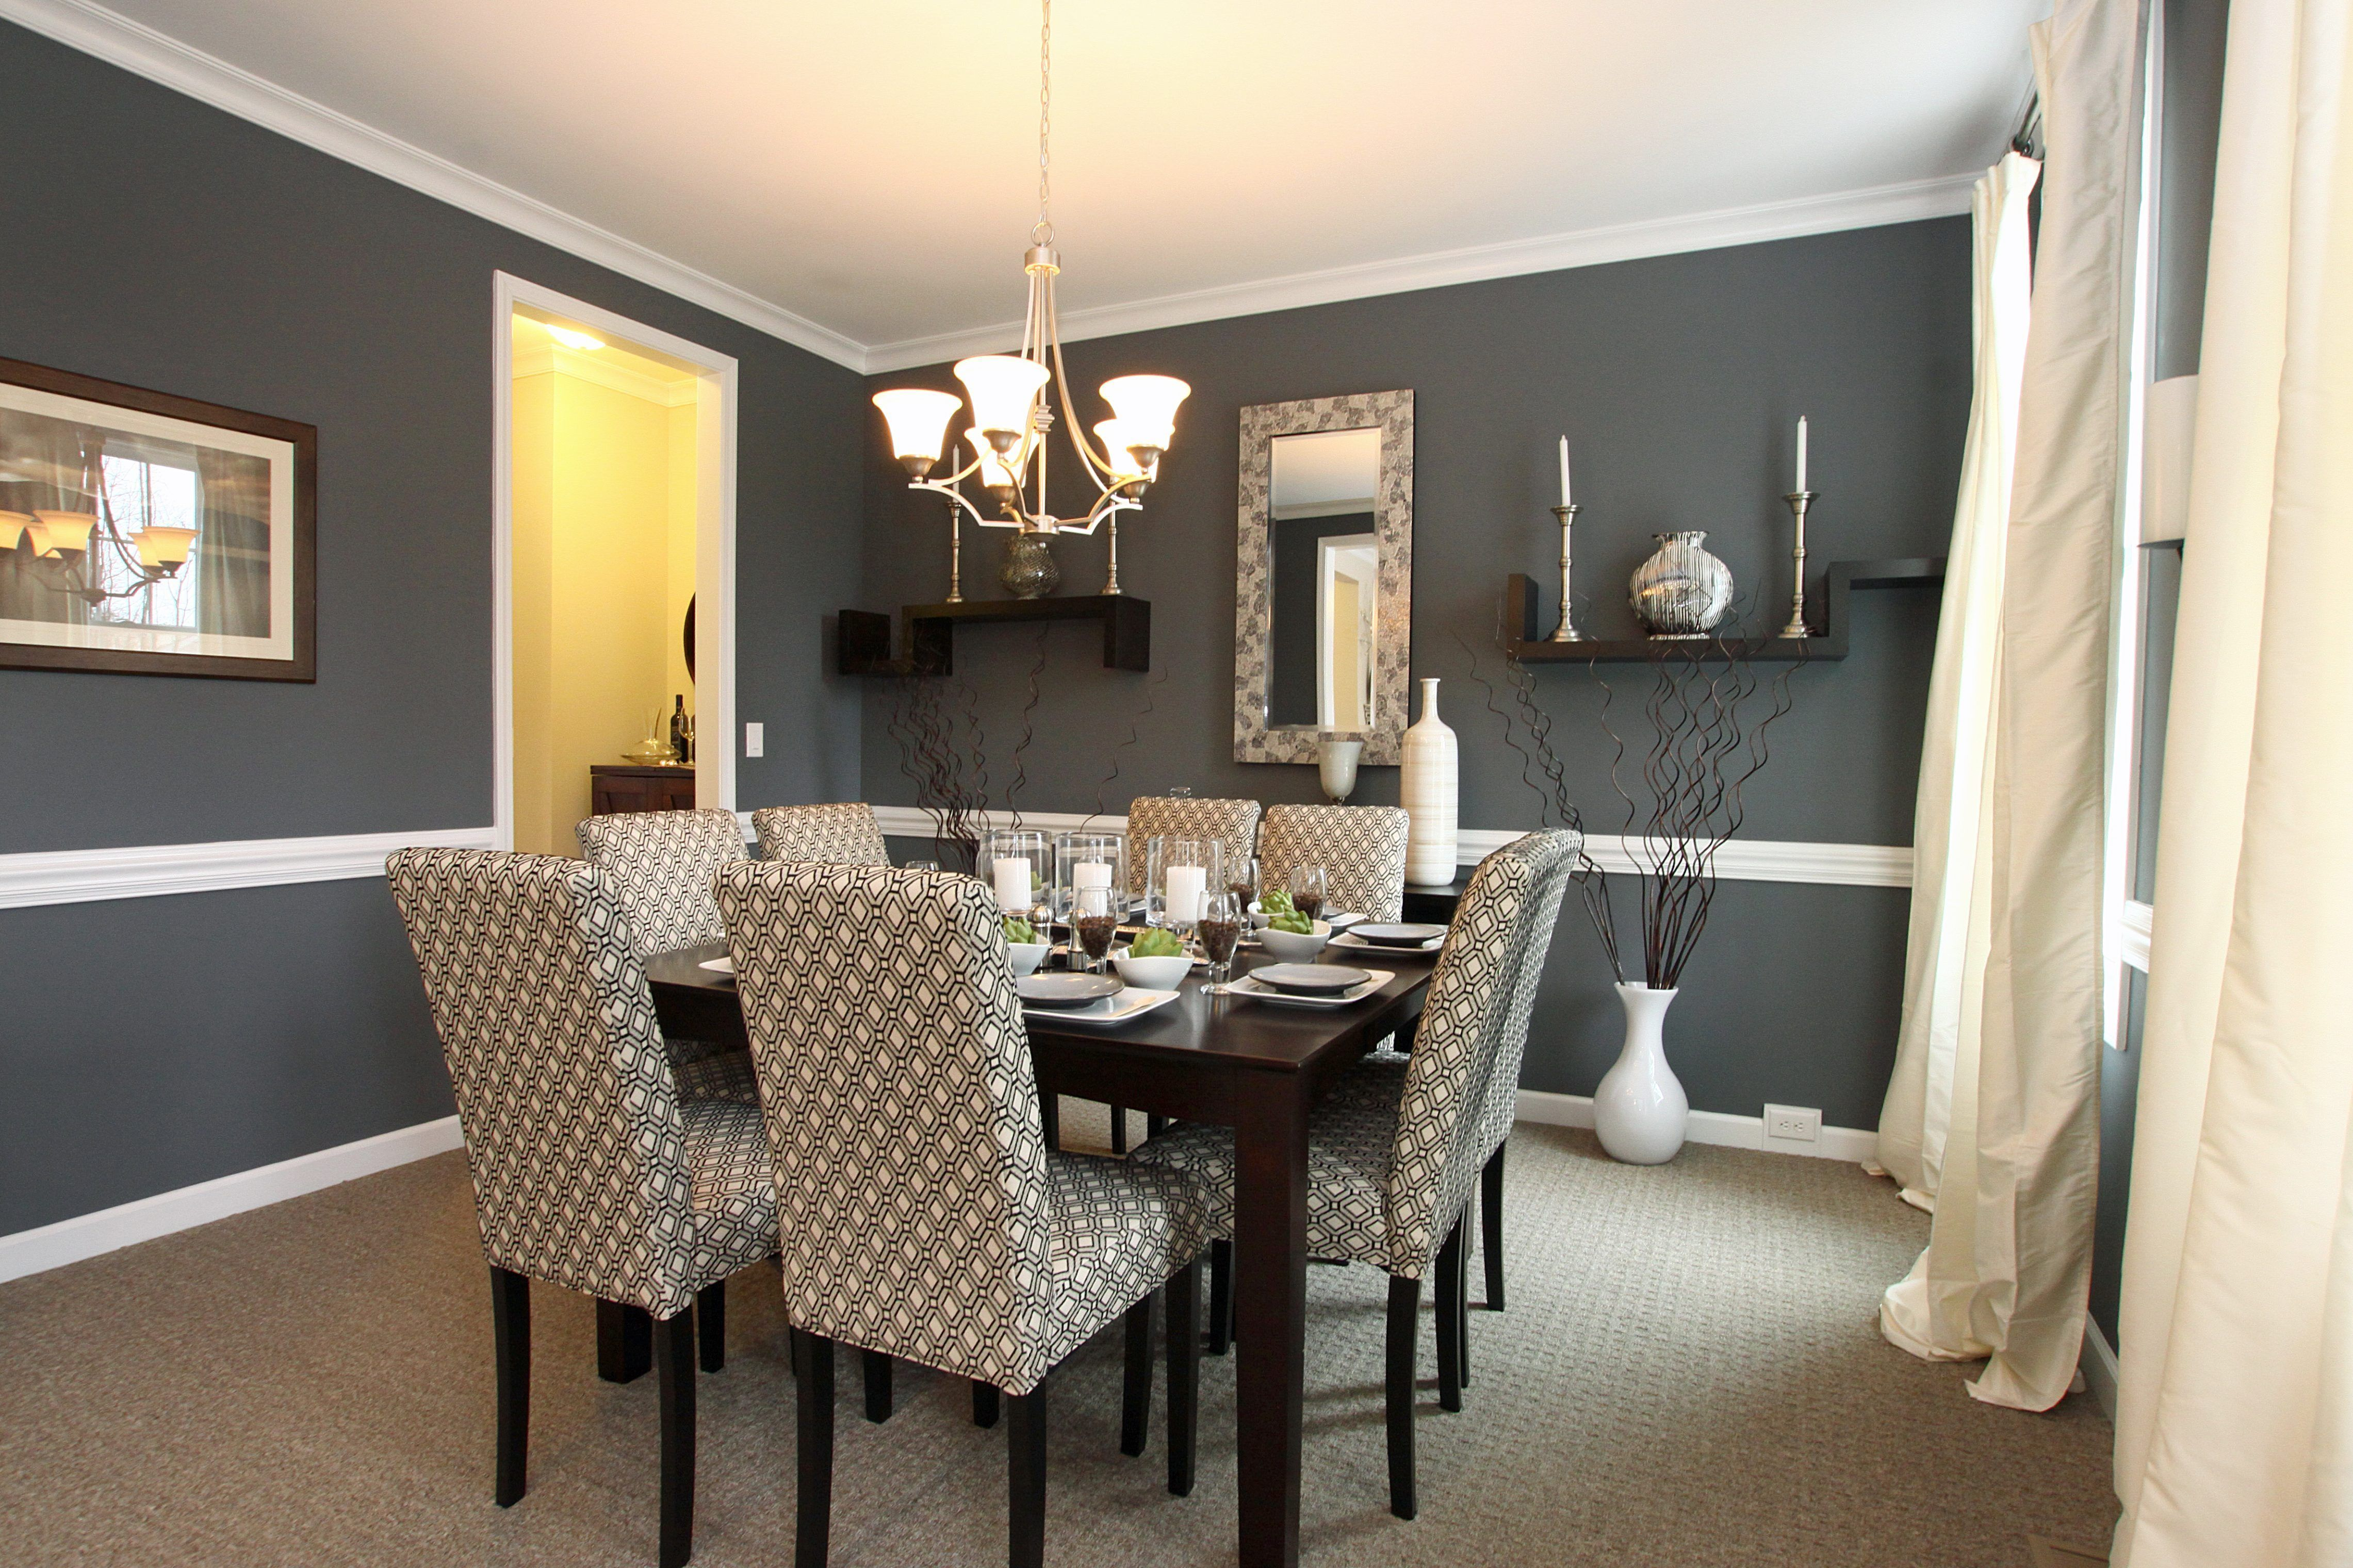 Budget Dining Room Overhauls   March, 2019   Dining room ...